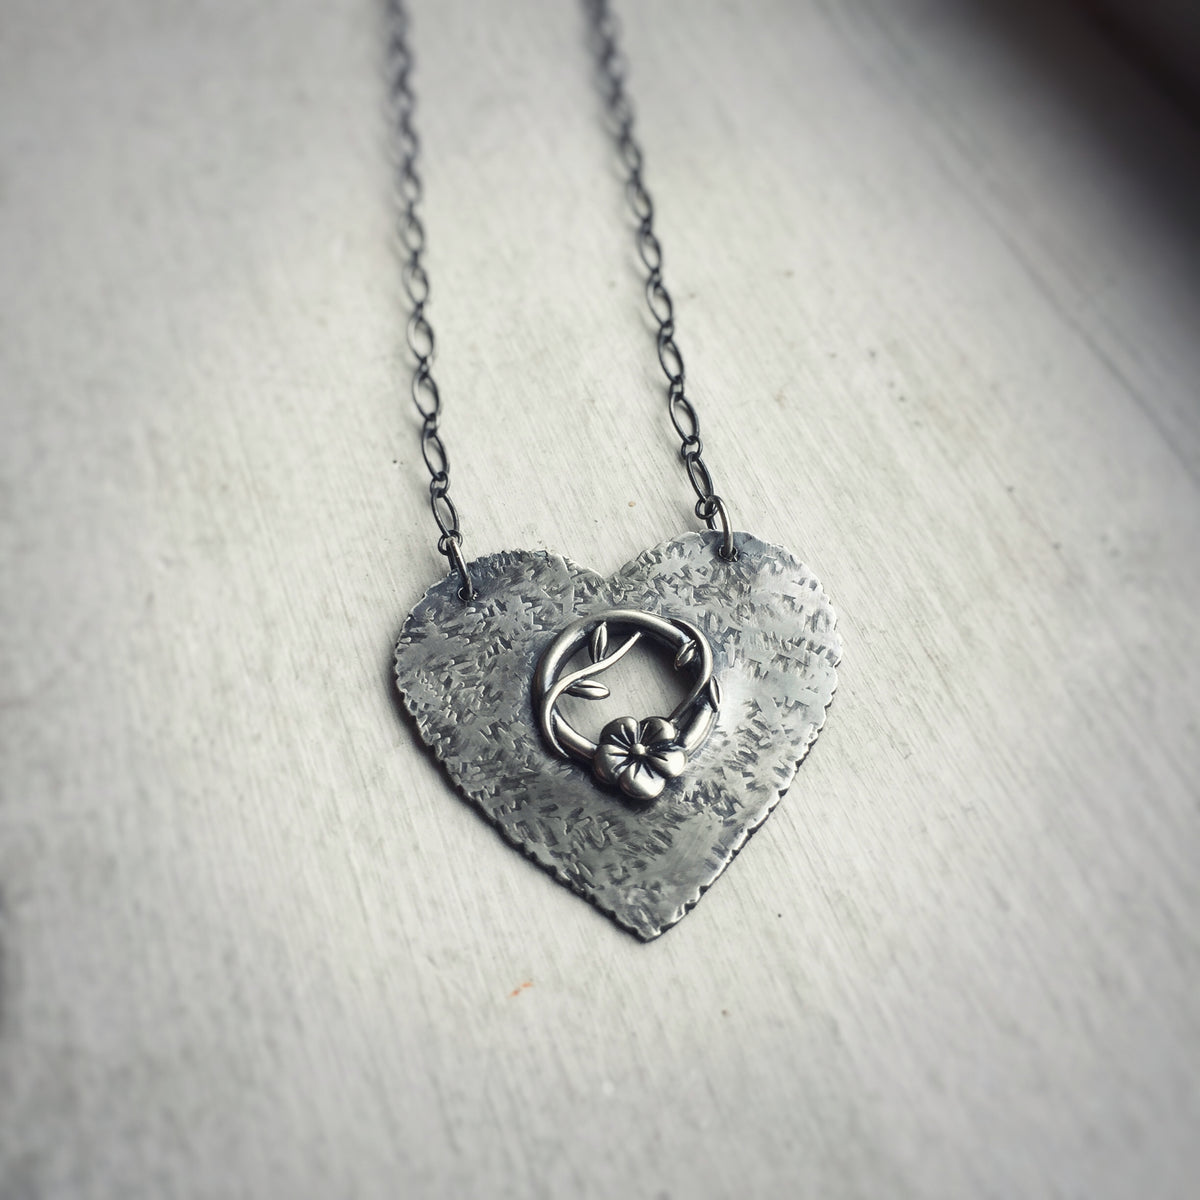 Heart Necklace with Vine and Flower